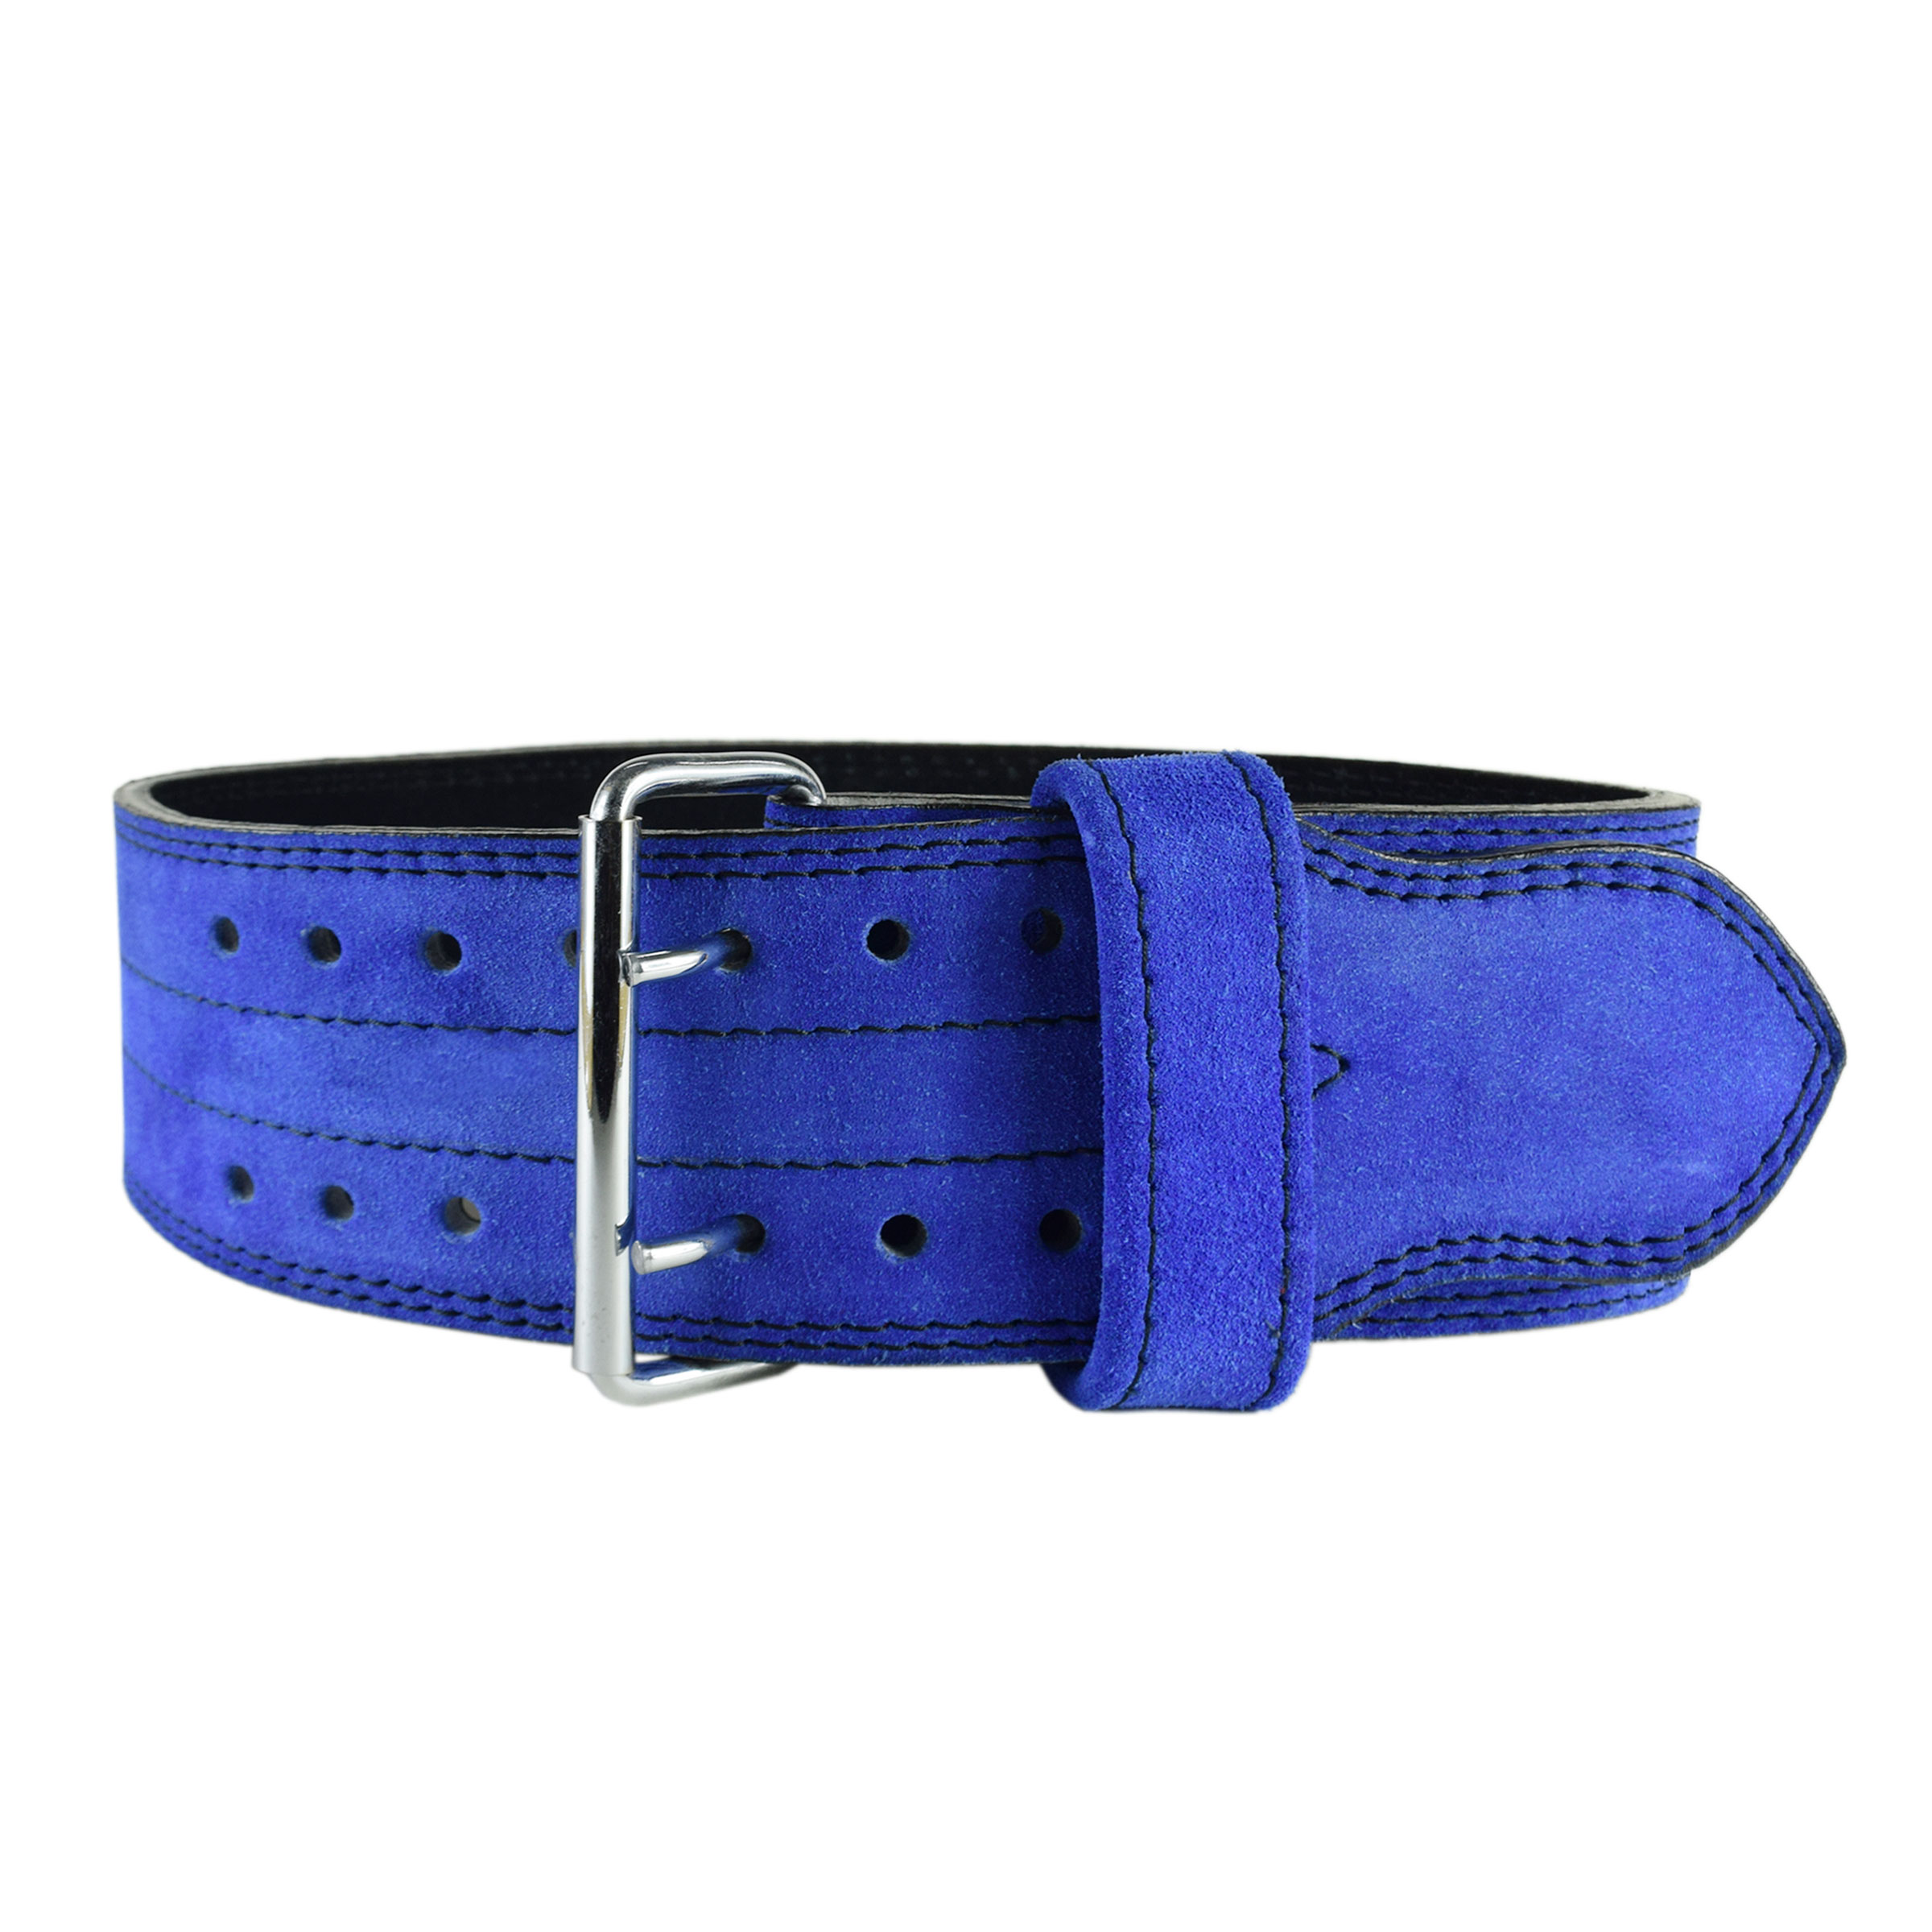 BLUE WEIGHTLIFTING BELT